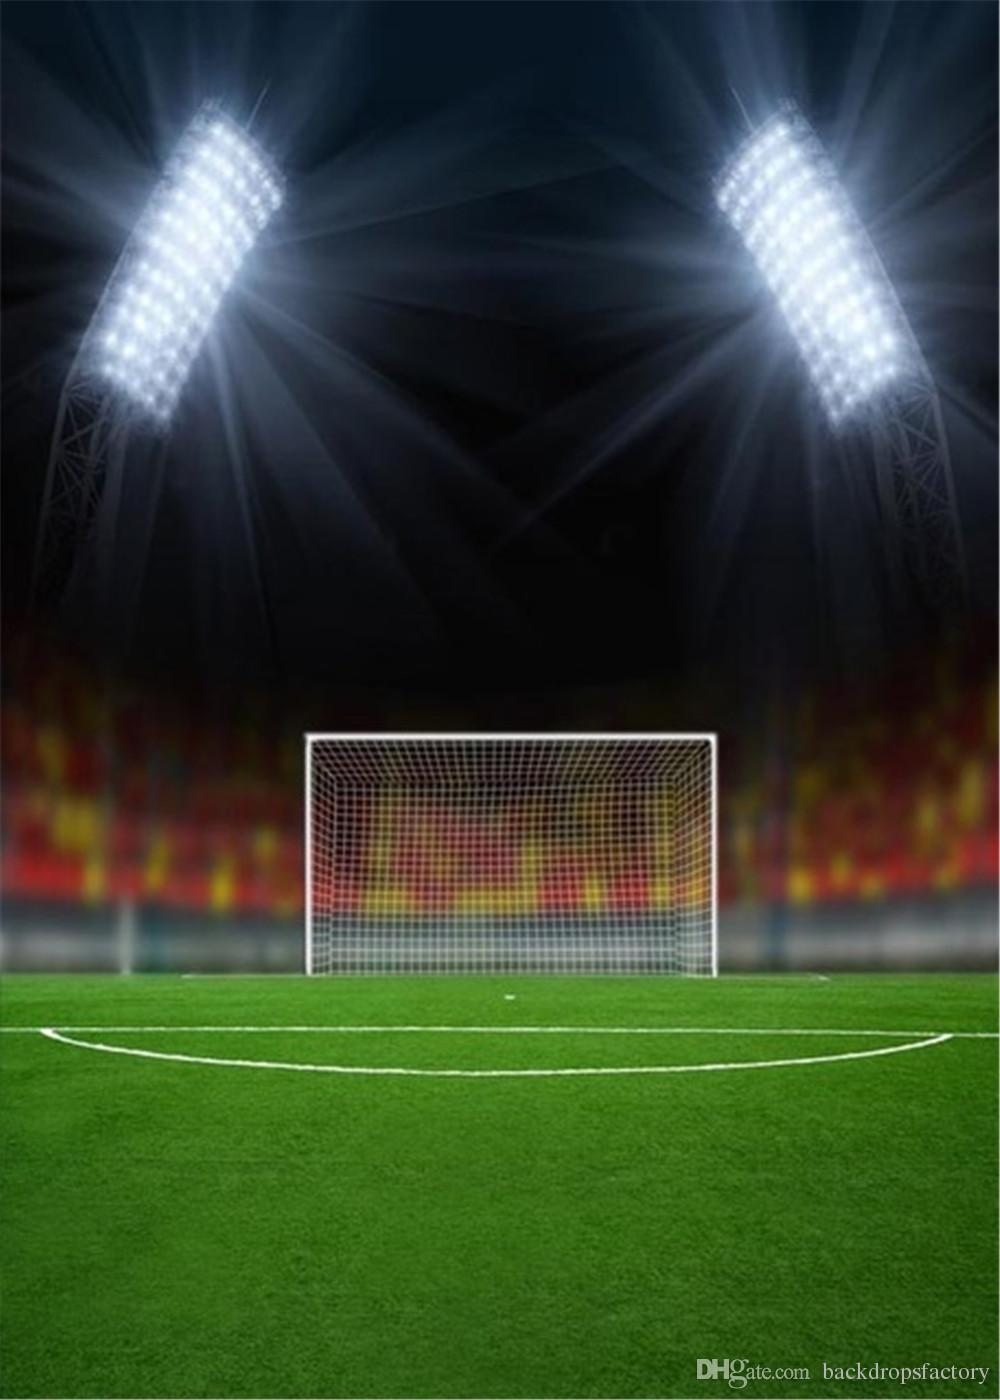 Football Soccer Stadium Aerial View Scene 12x8ft Vinyl Photography Background Bright Spotlights Numberous Bleachers Seats Sports Theme Backdrop Adult Sportsman Portrait Shoot Birthday Banner